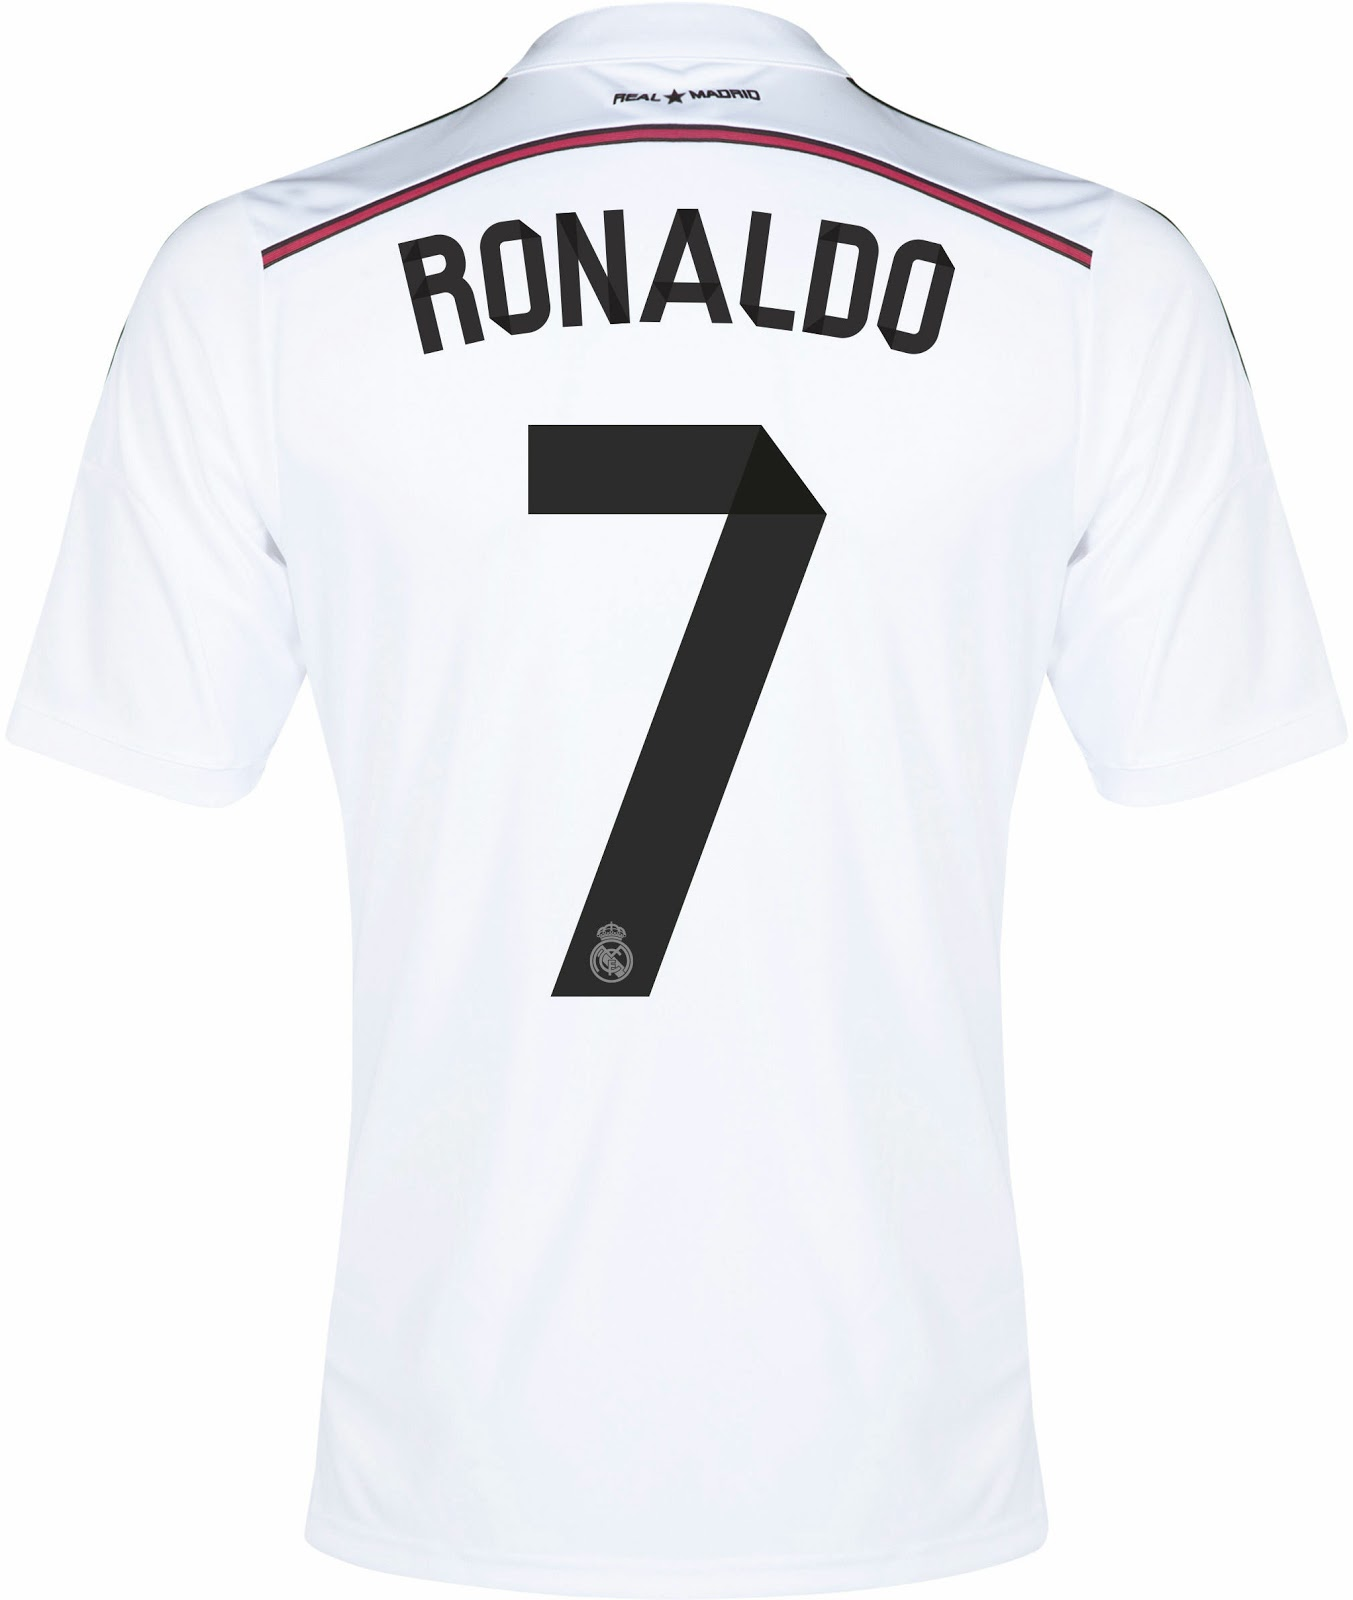 12 Real Madrid Font Name Images